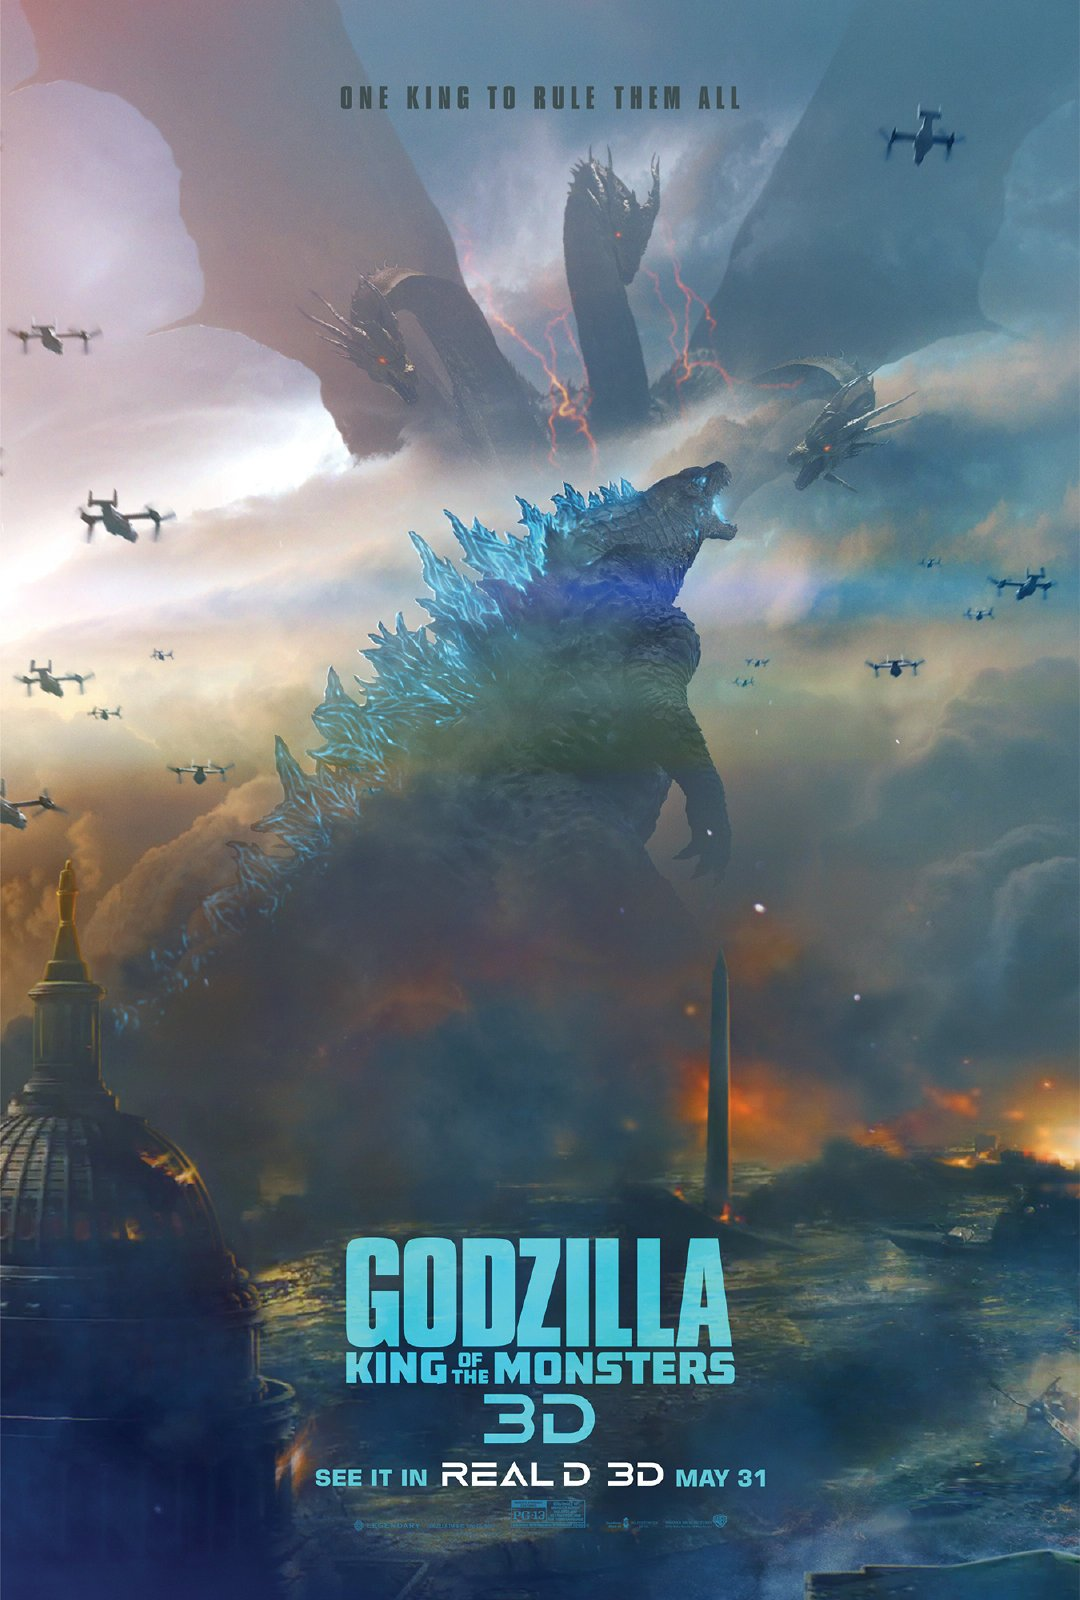 0bcc82592c4 Two new movie posters for Godzilla 2 King of the Monsters have been  revealed by IMAX and RealD 3D in preparation for the King's arrival this  month!